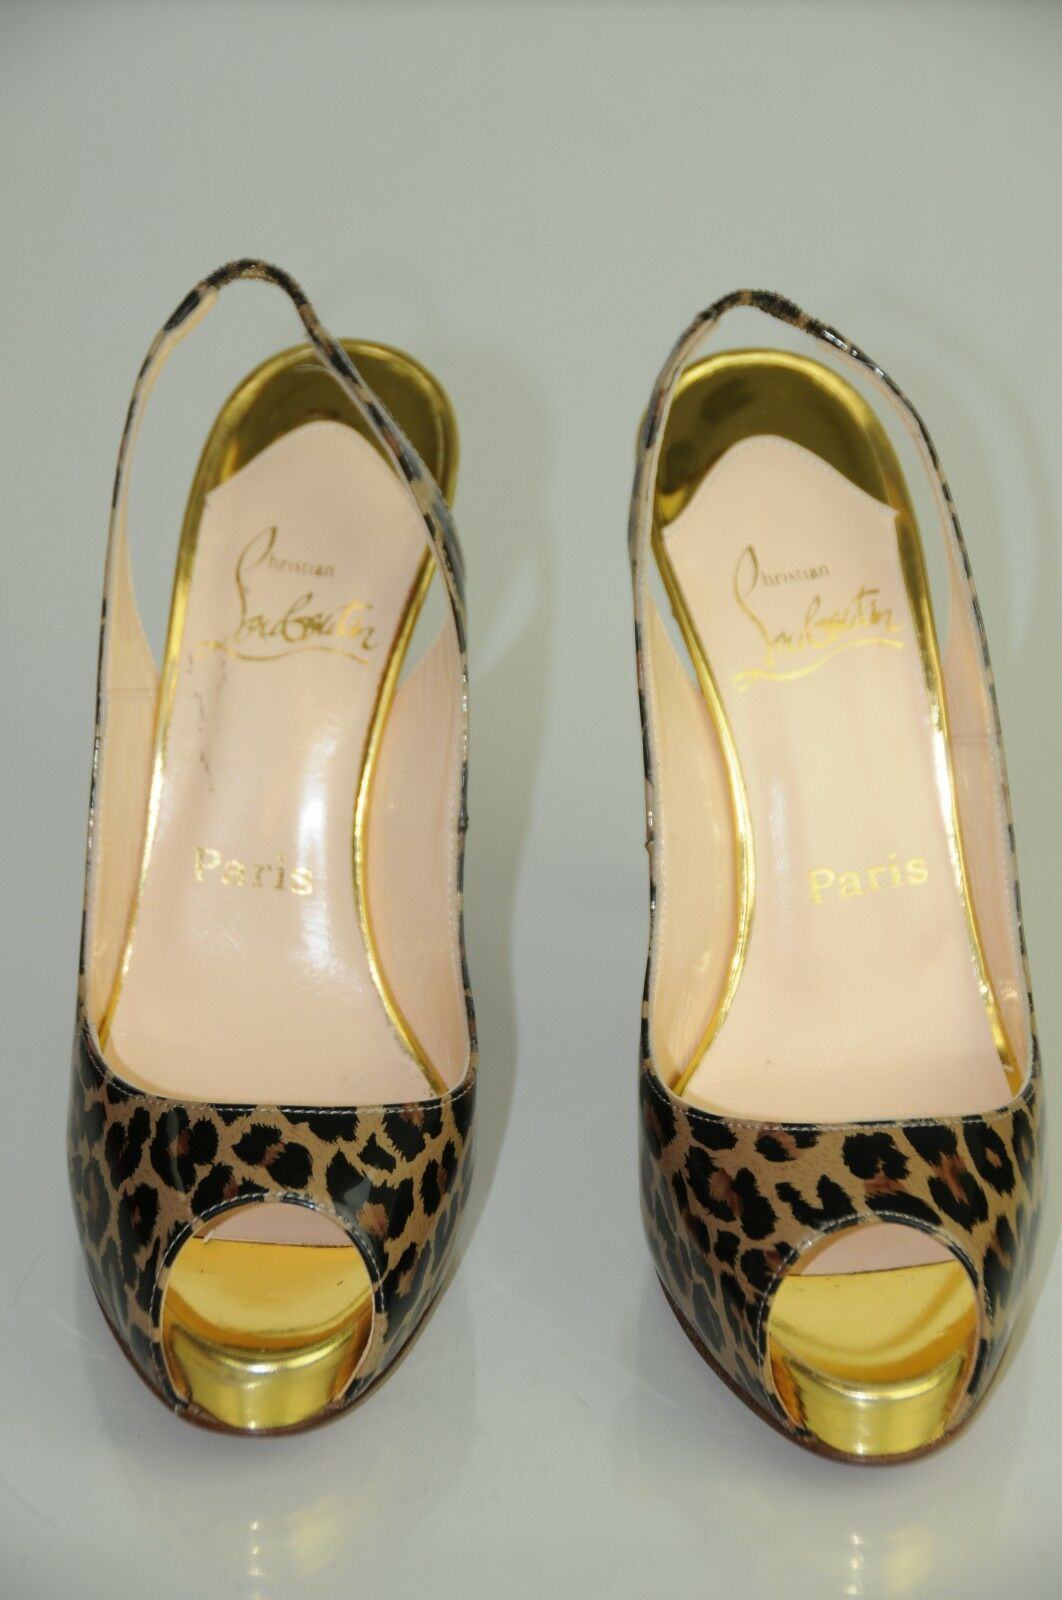 New Christian Louboutin No Prive Black Brown gold Leopard Leopard Leopard Platform shoes 37 7c7a50